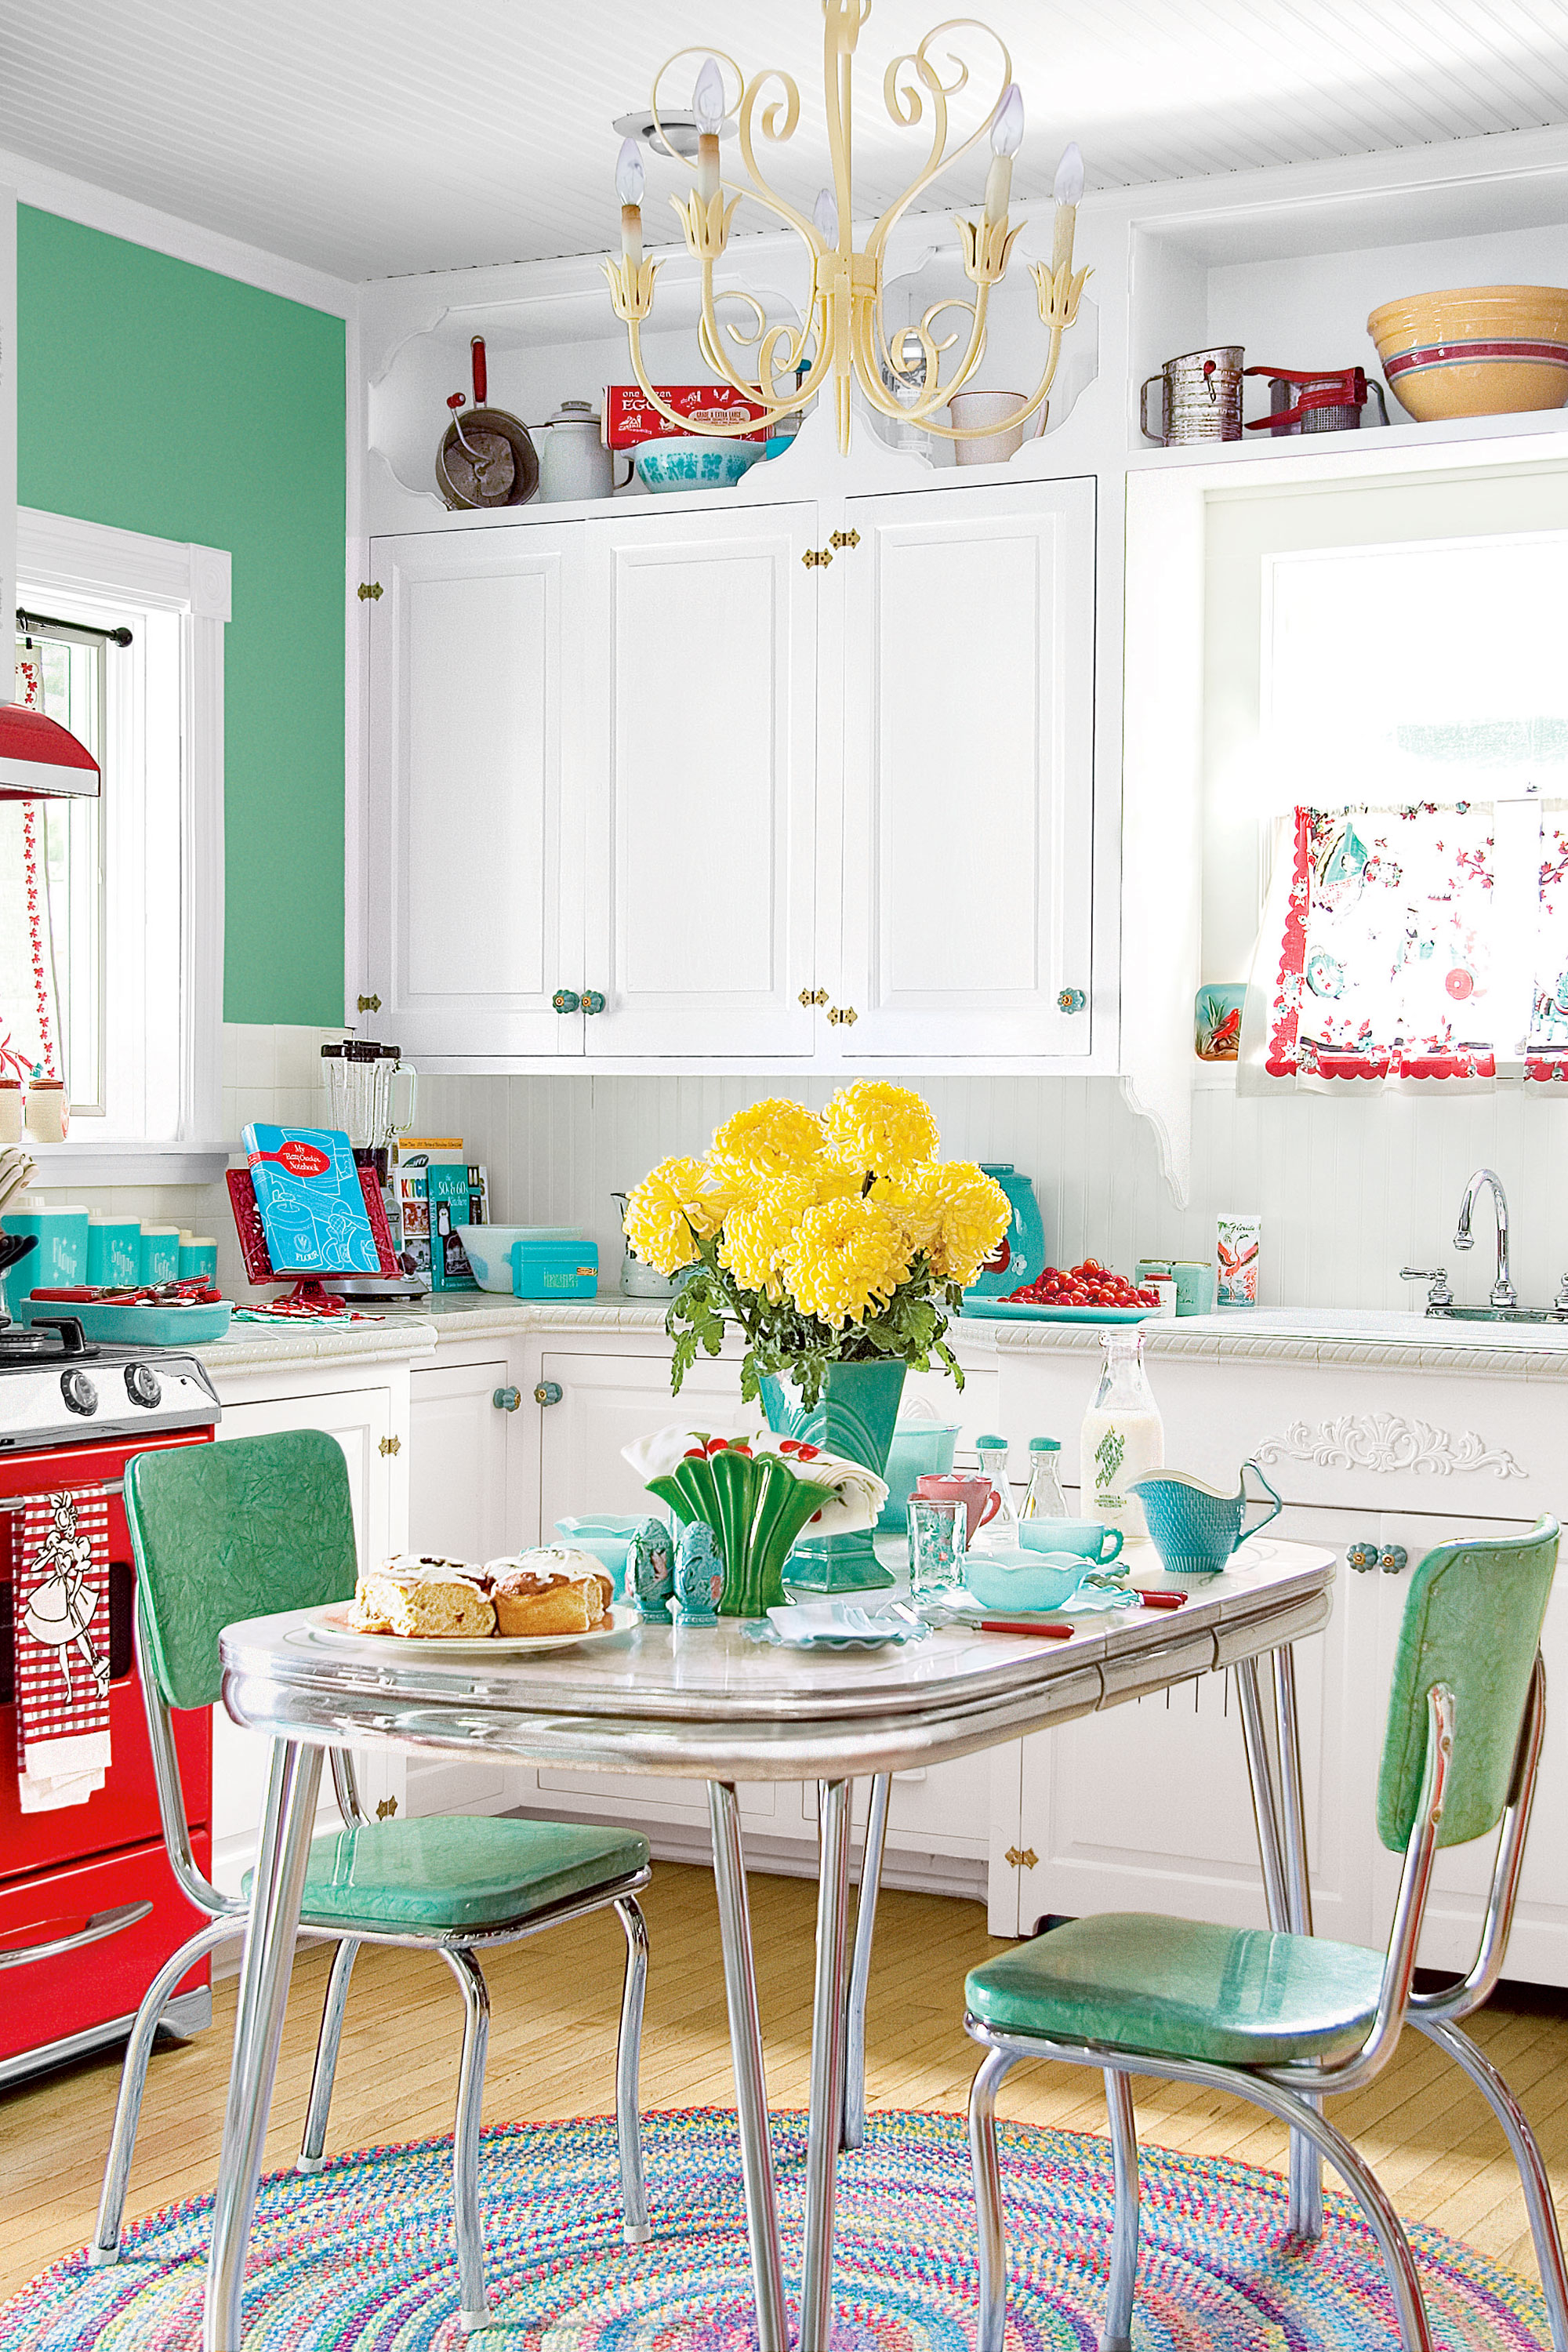 Vintage Kitchen Ideas: 11 Retro Diner Decor Ideas For Your Kitchen